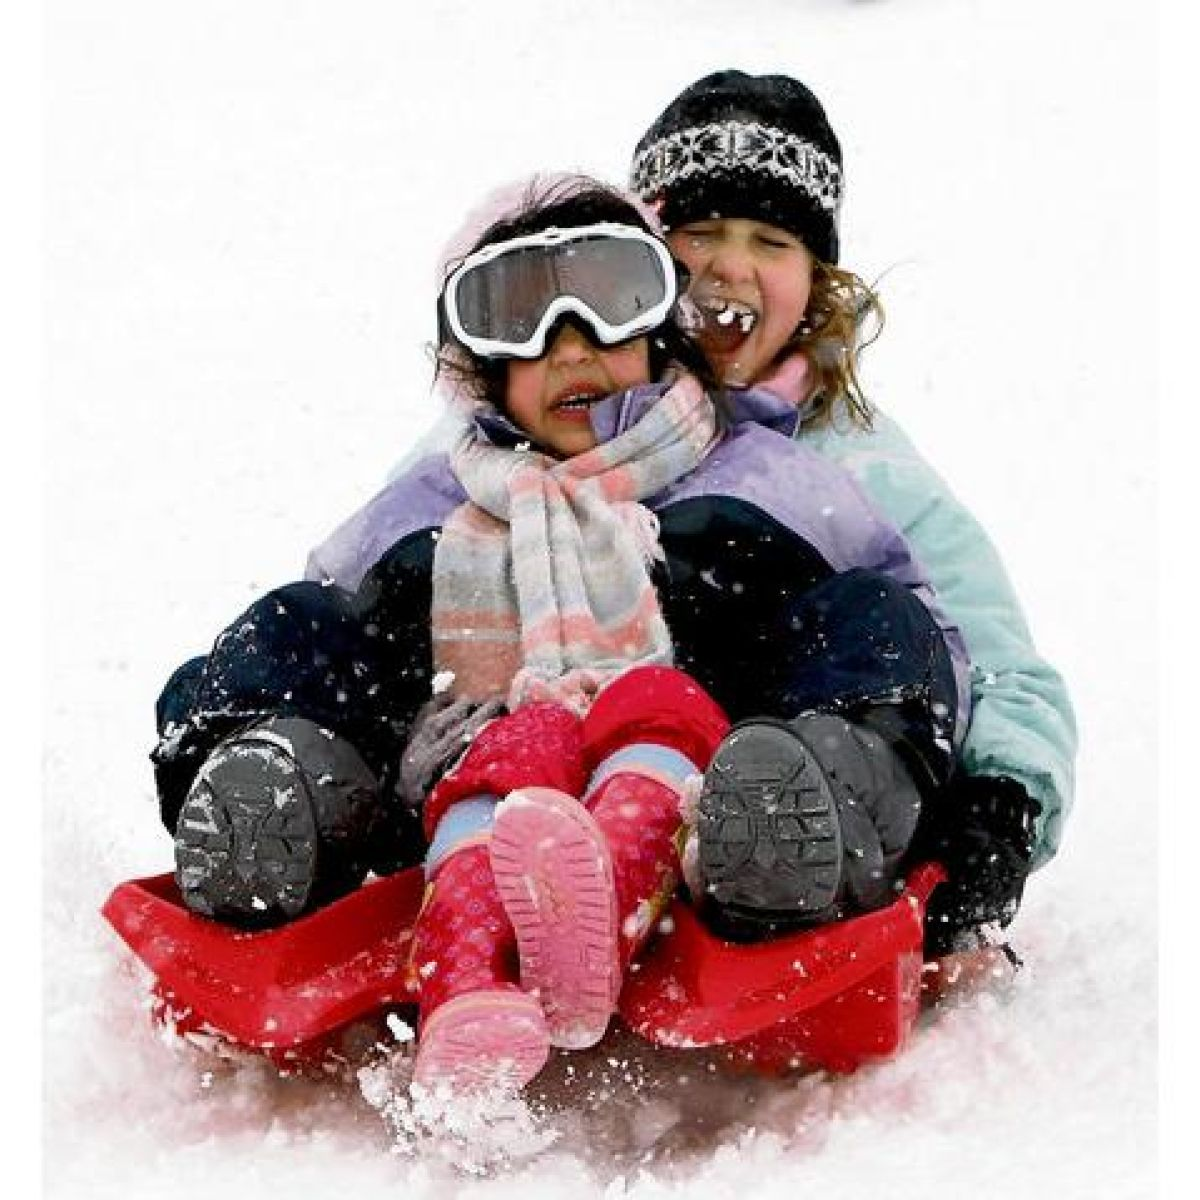 Sledging: safety rules on the hill